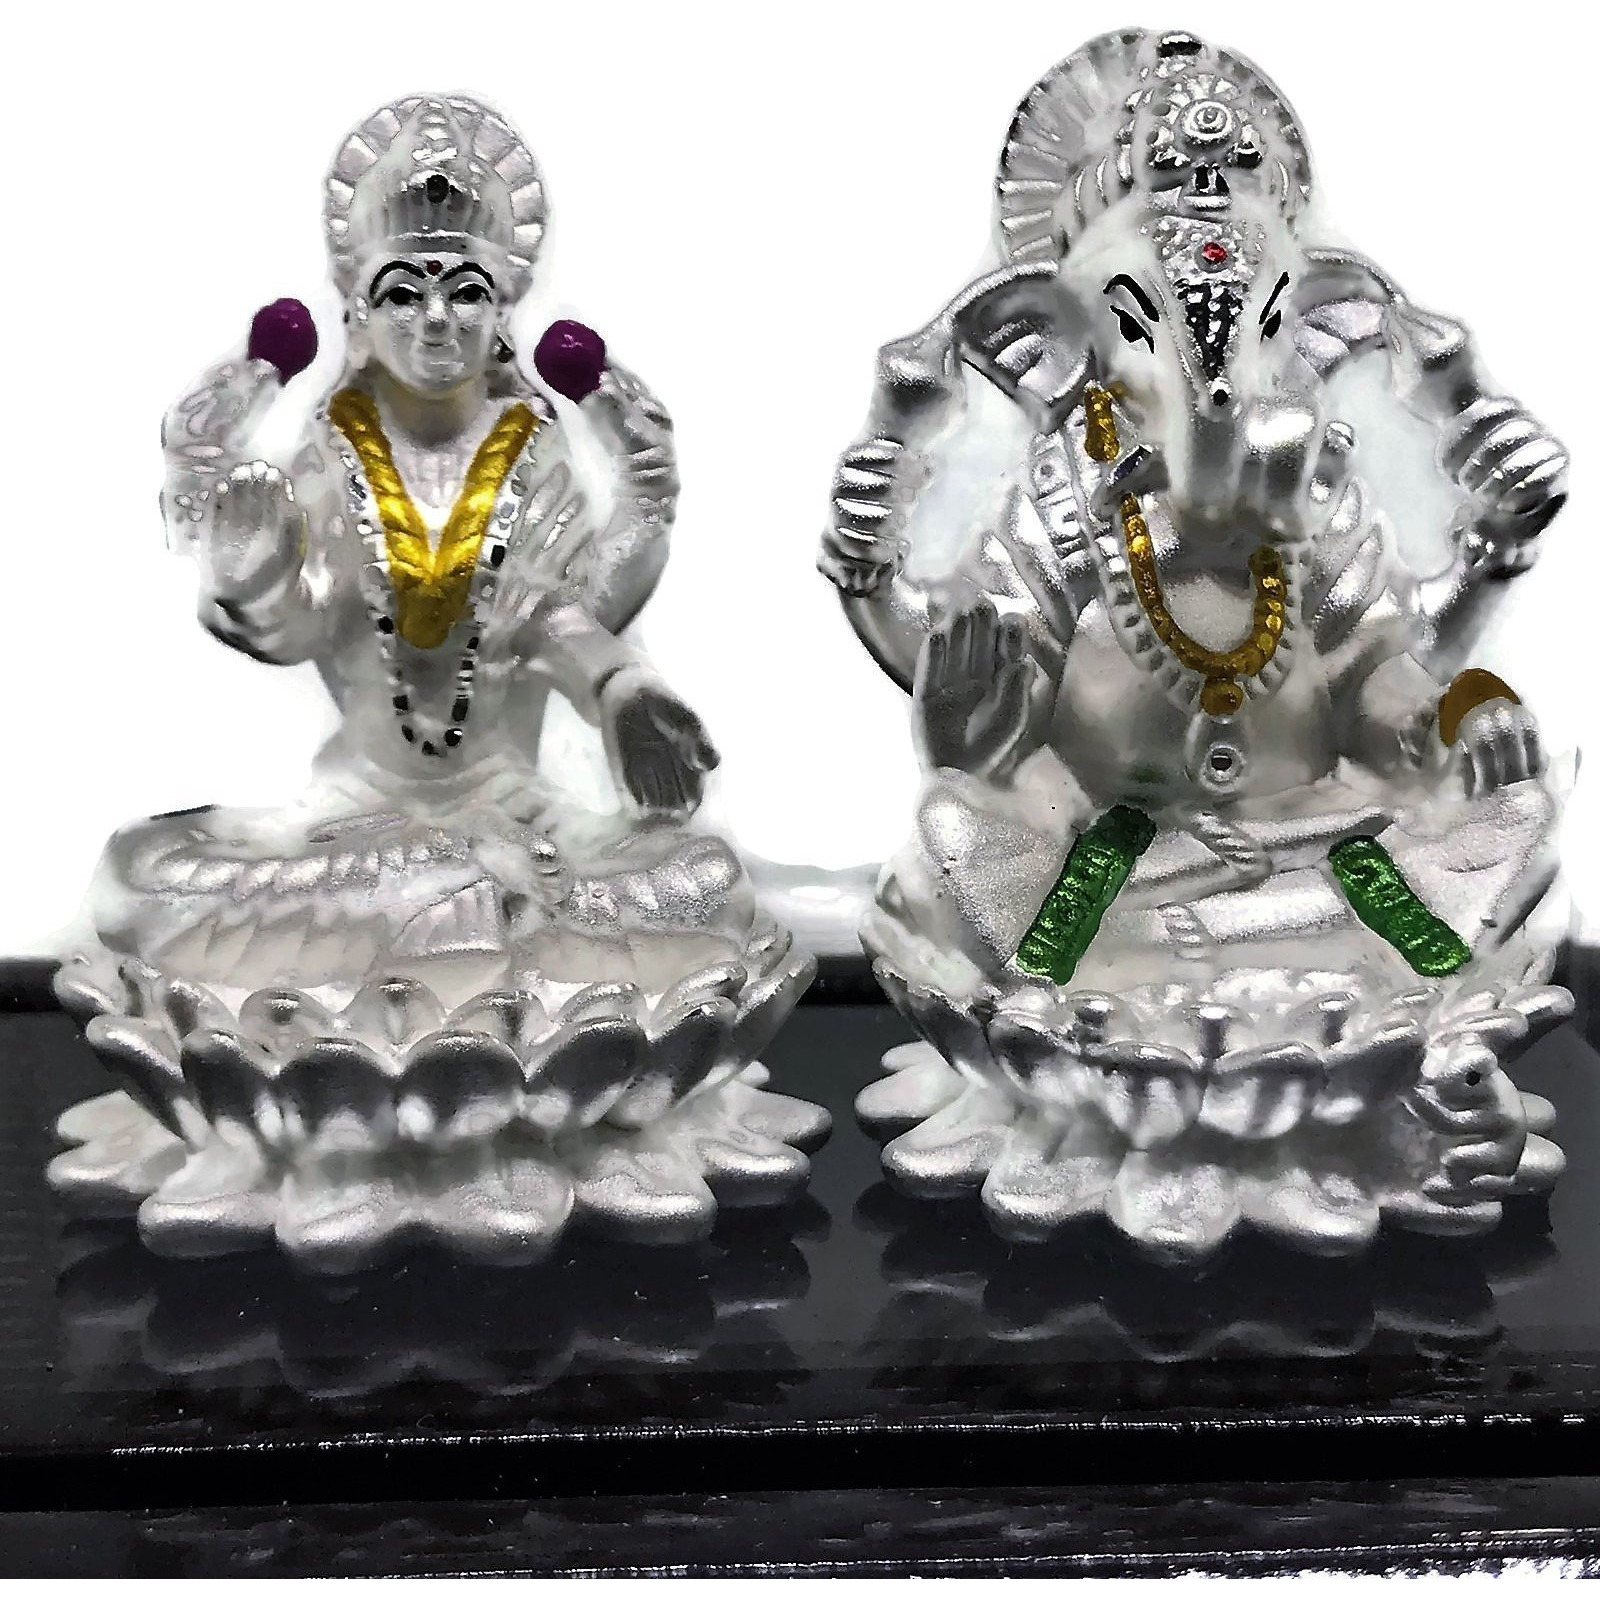 999 Pure Silver Ganesh & Lakshmi / Laxmi Idol / Statue / Murti (Figurine# 08) (Shipping: EXPEDITED SHIPPING (2-3 DAYS)+$12.99)